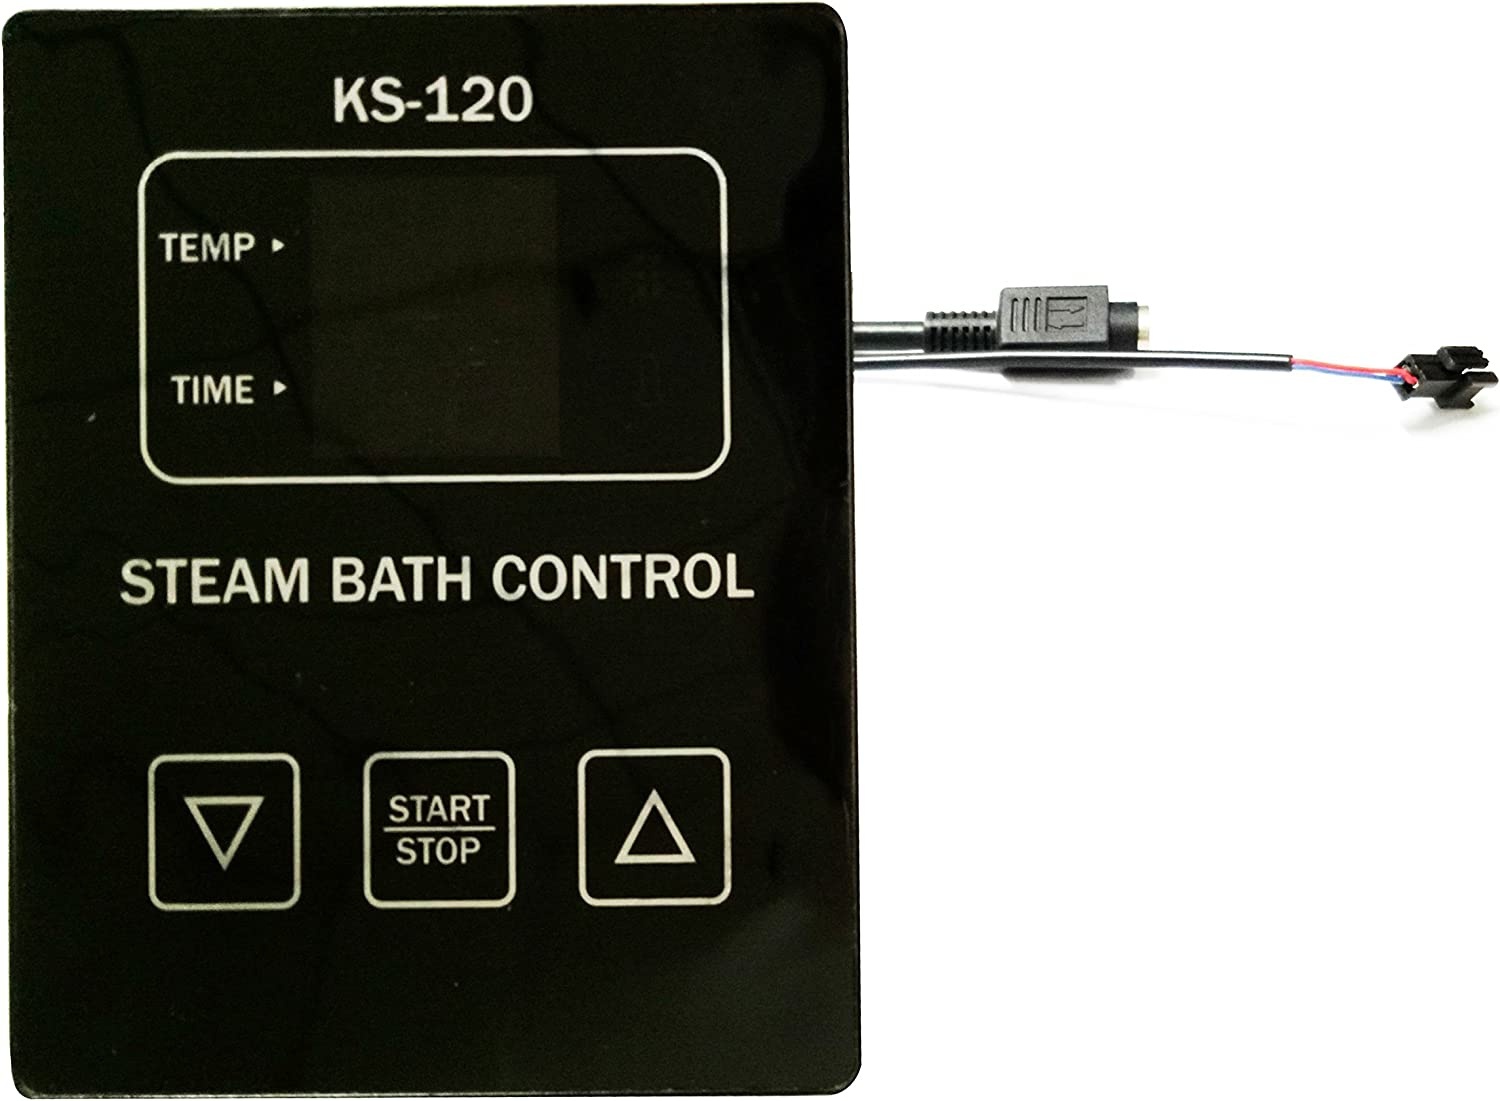 Coasts 4KW 240V with KS-120 Controller Steam Generator for Home Business Saunas